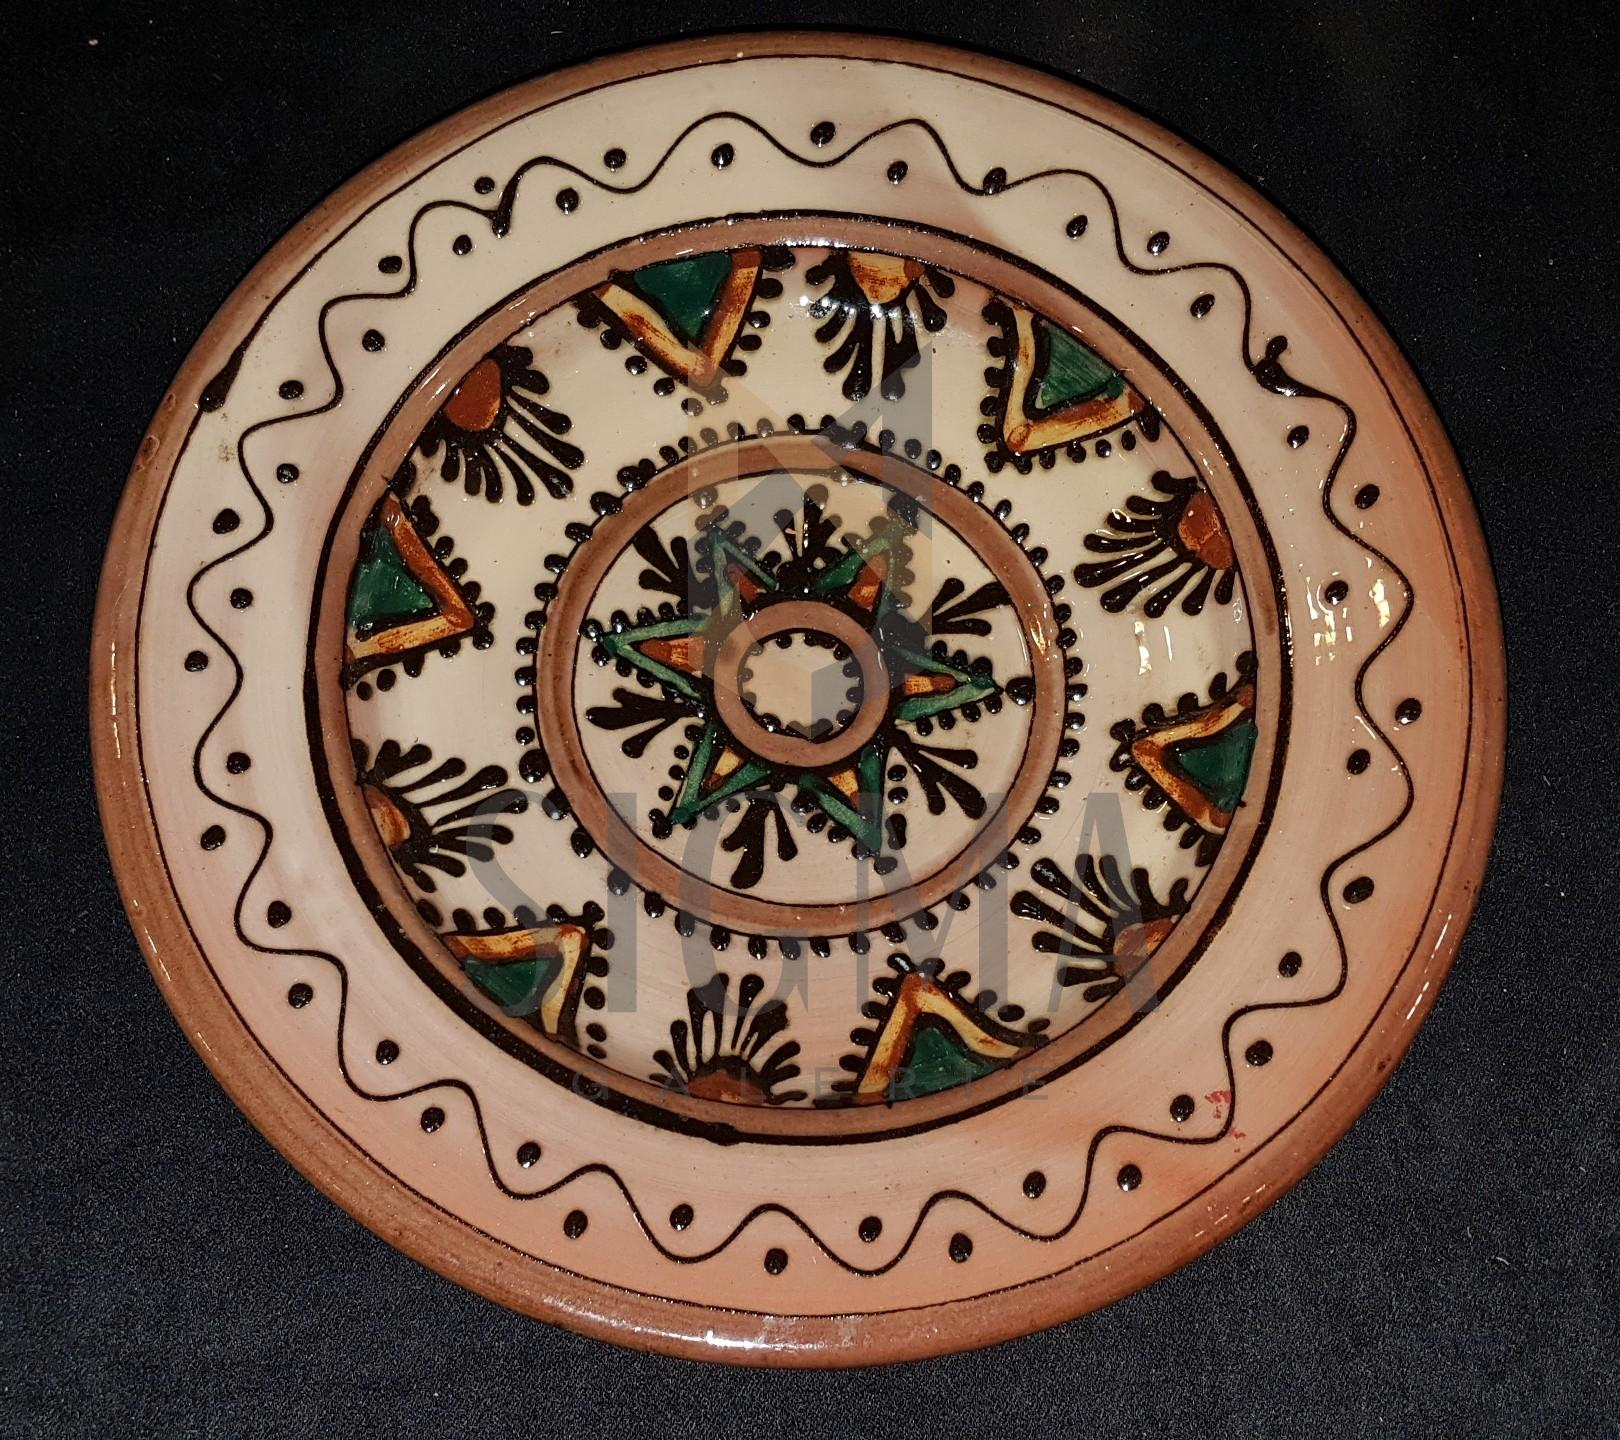 VAS DECORATIV CERAMICA - TRADITIONAL, DIAMETRU 23 CM